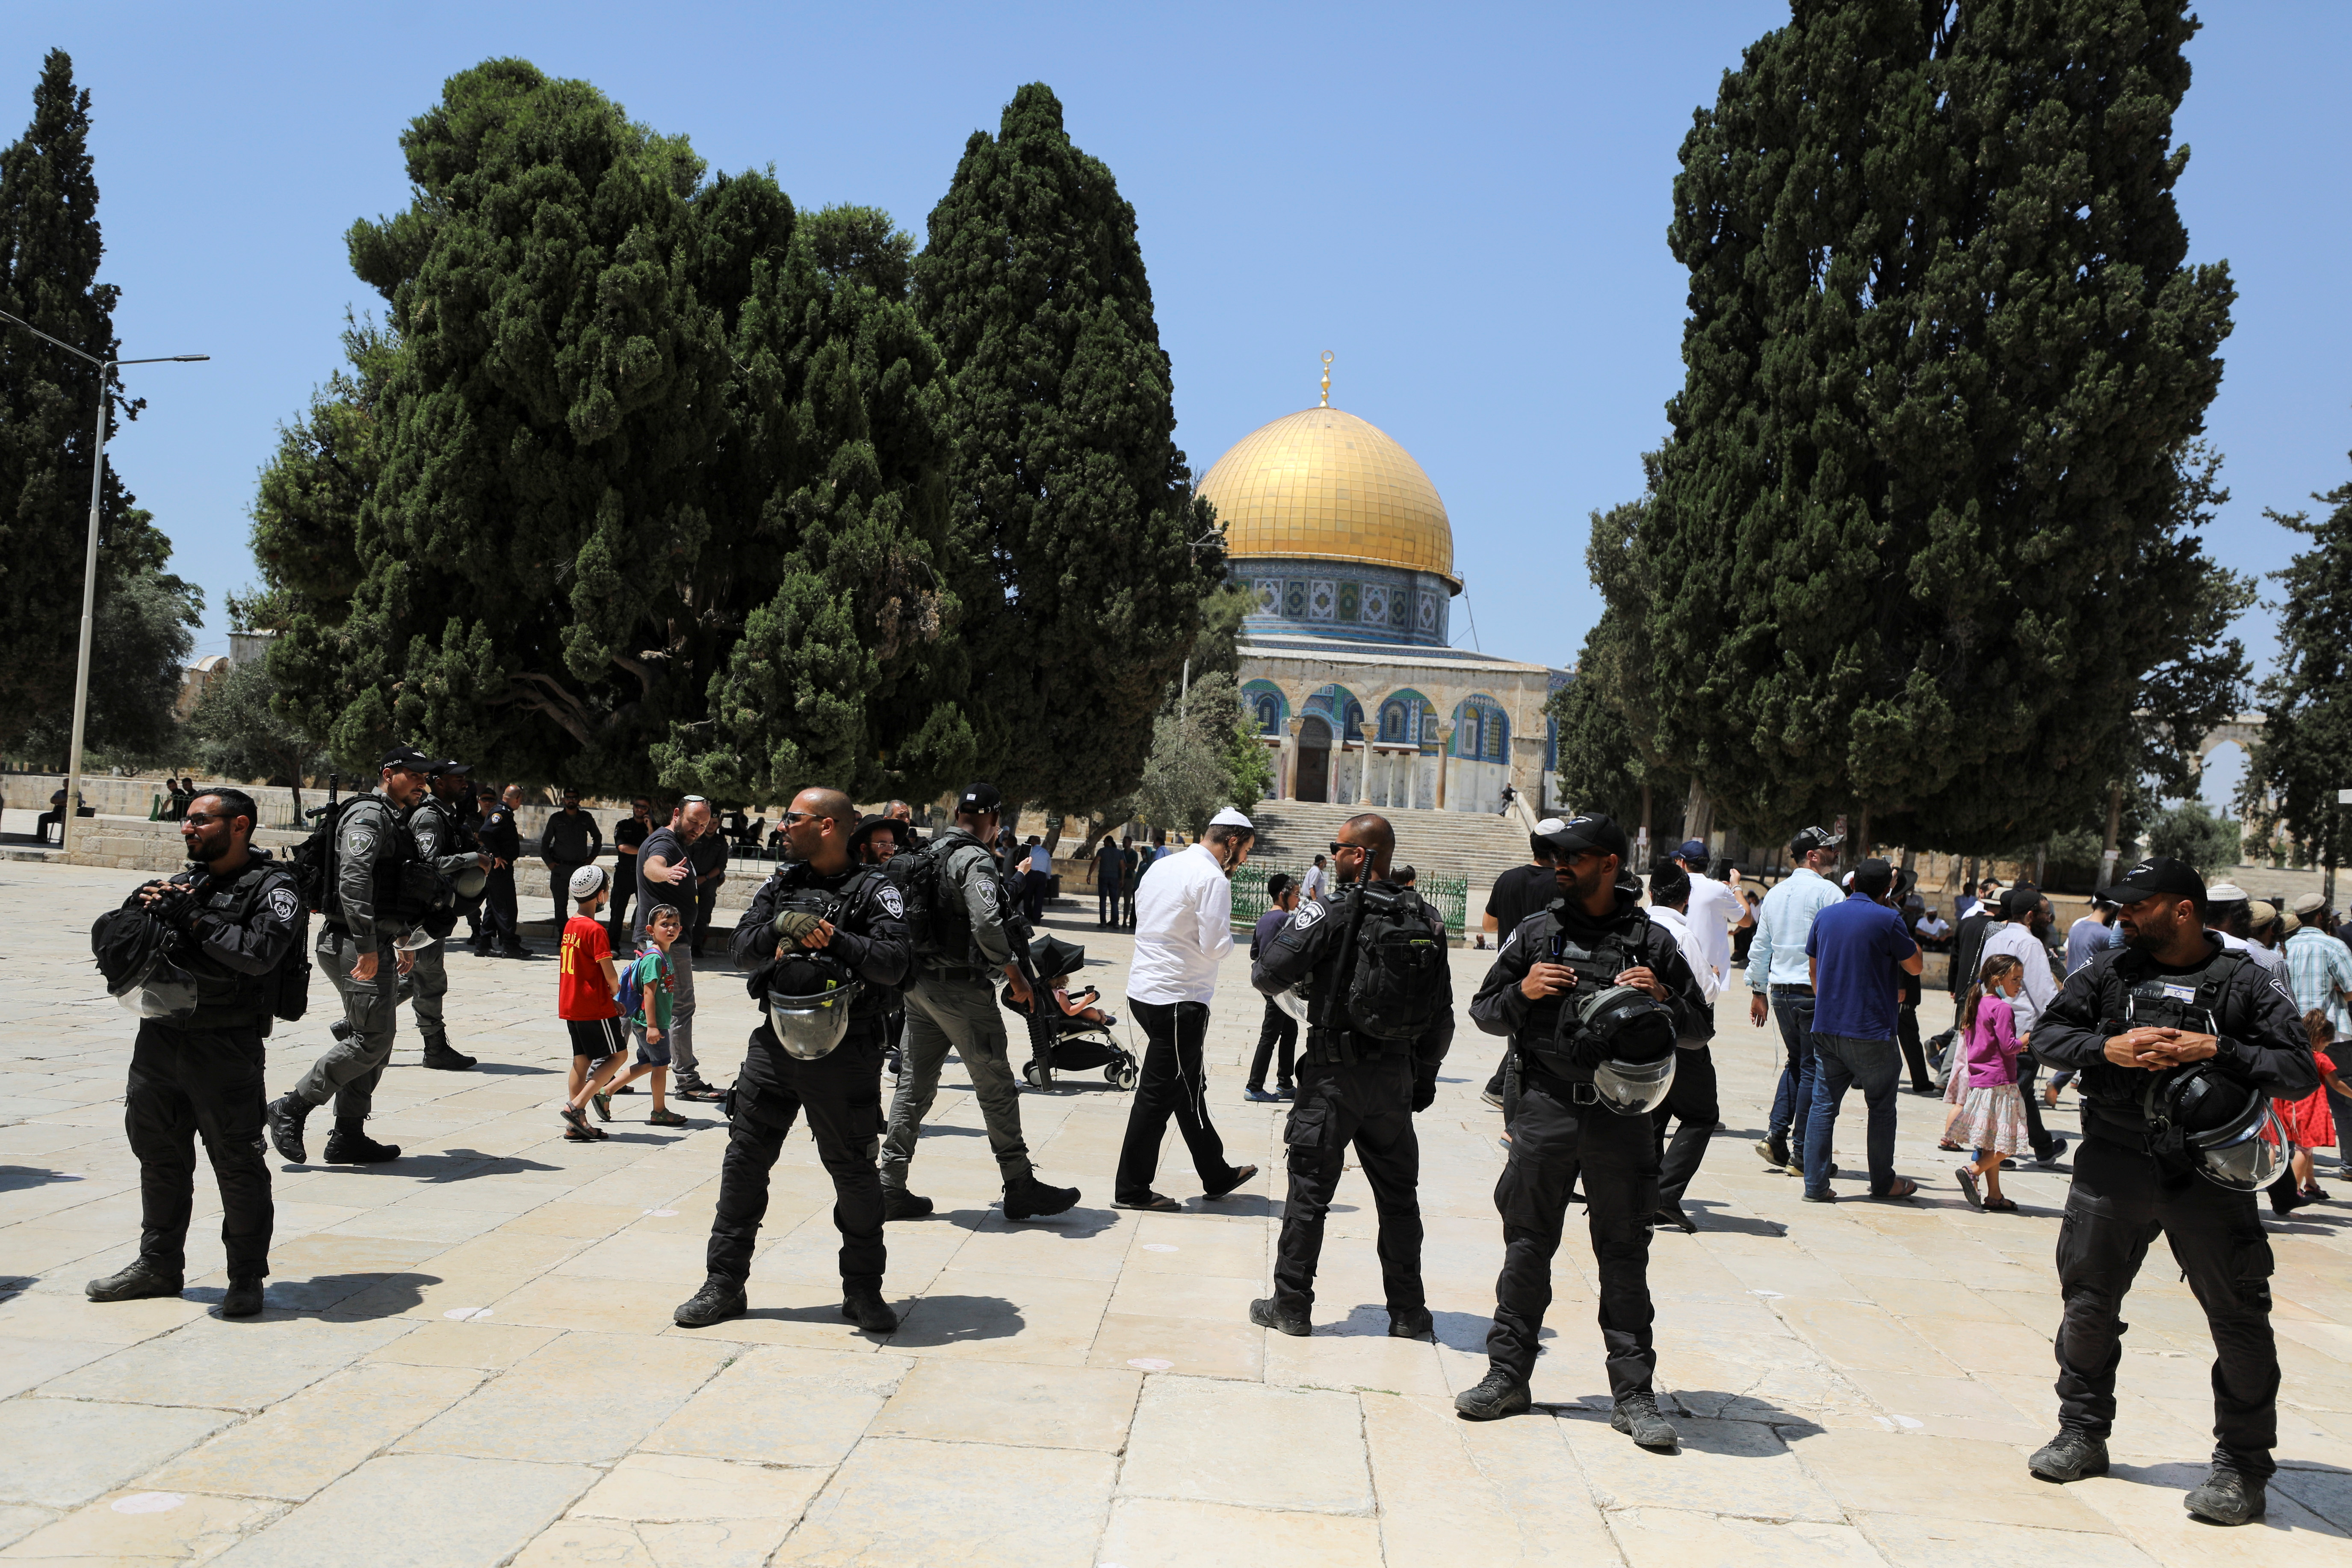 The Dome of the Rock is seen in the background as Israeli security forces guard after brief clashes erupted between Israeli police and Palestinians at al-Aqsa Mosque over visits by Jews on the Tisha B'Av fast day to the compound known to Muslims as Noble Sanctuary and to Jews as Temple Mount, in Jerusalem's Old City, July 18, 2021. REUTERS/Ammar Awad